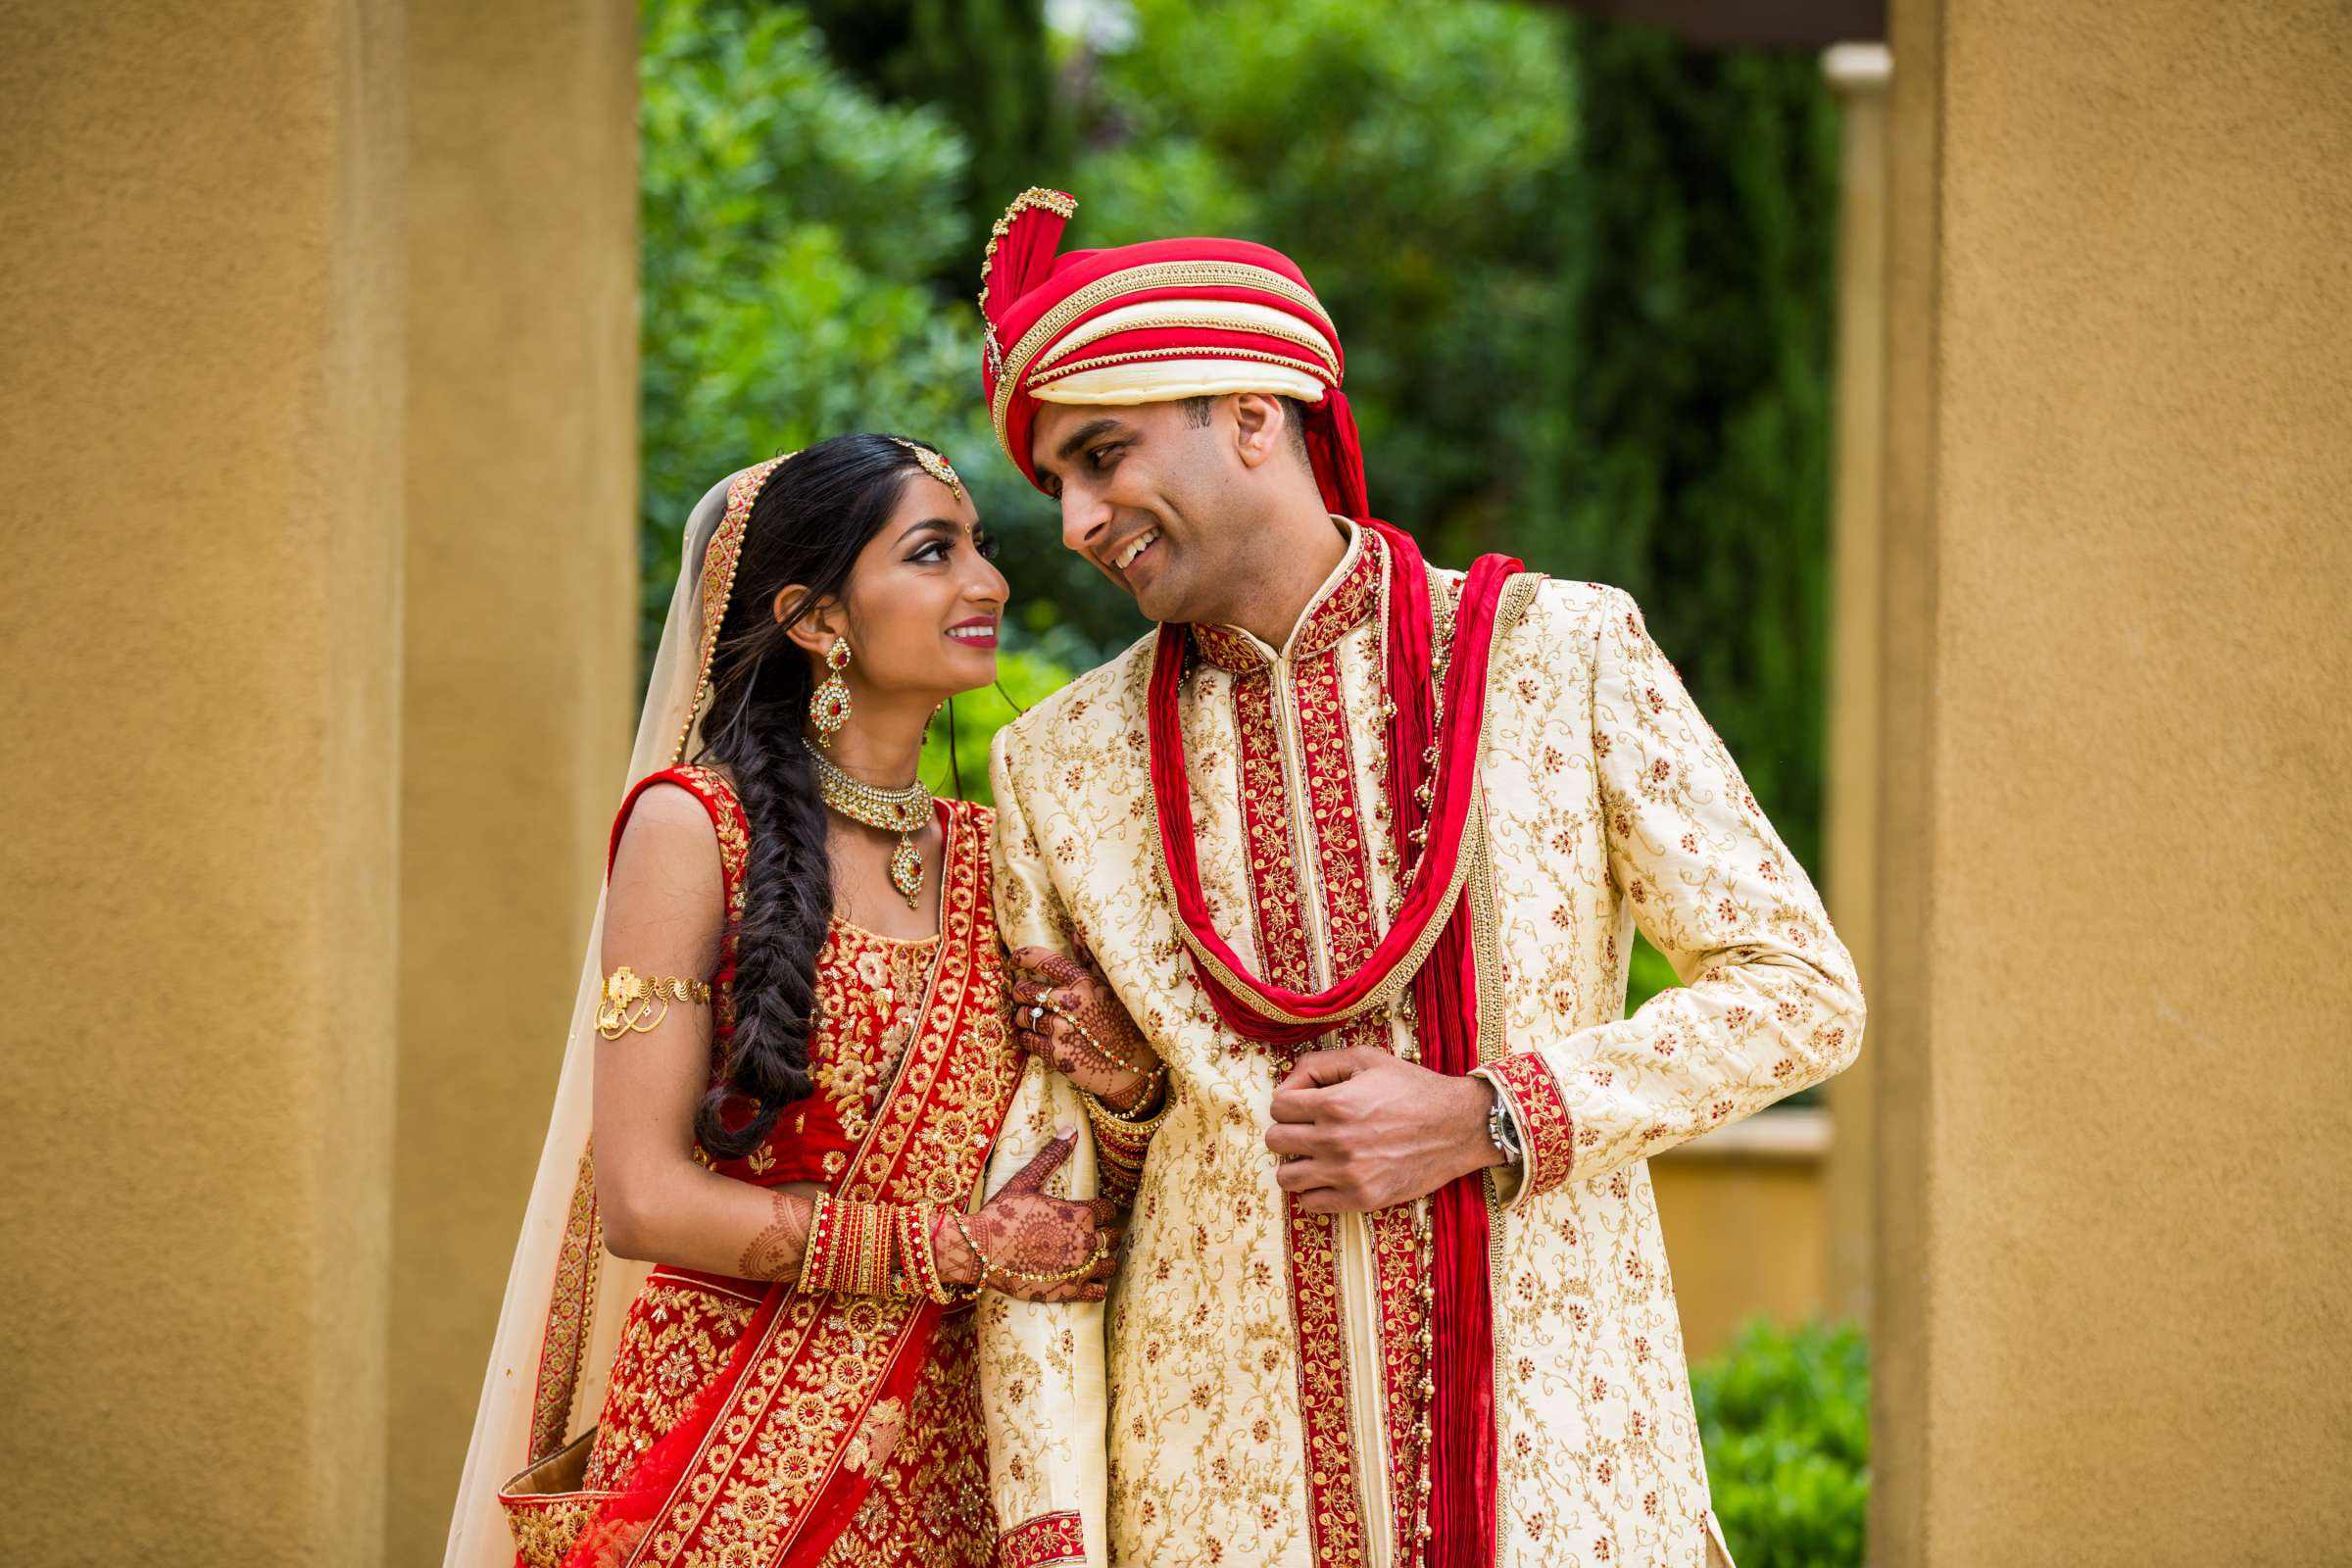 The Westin Carlsbad Resort and Spa Wedding coordinated by Shilpa Patel Events, Ami and Amit Wedding Photo #179 by True Photography